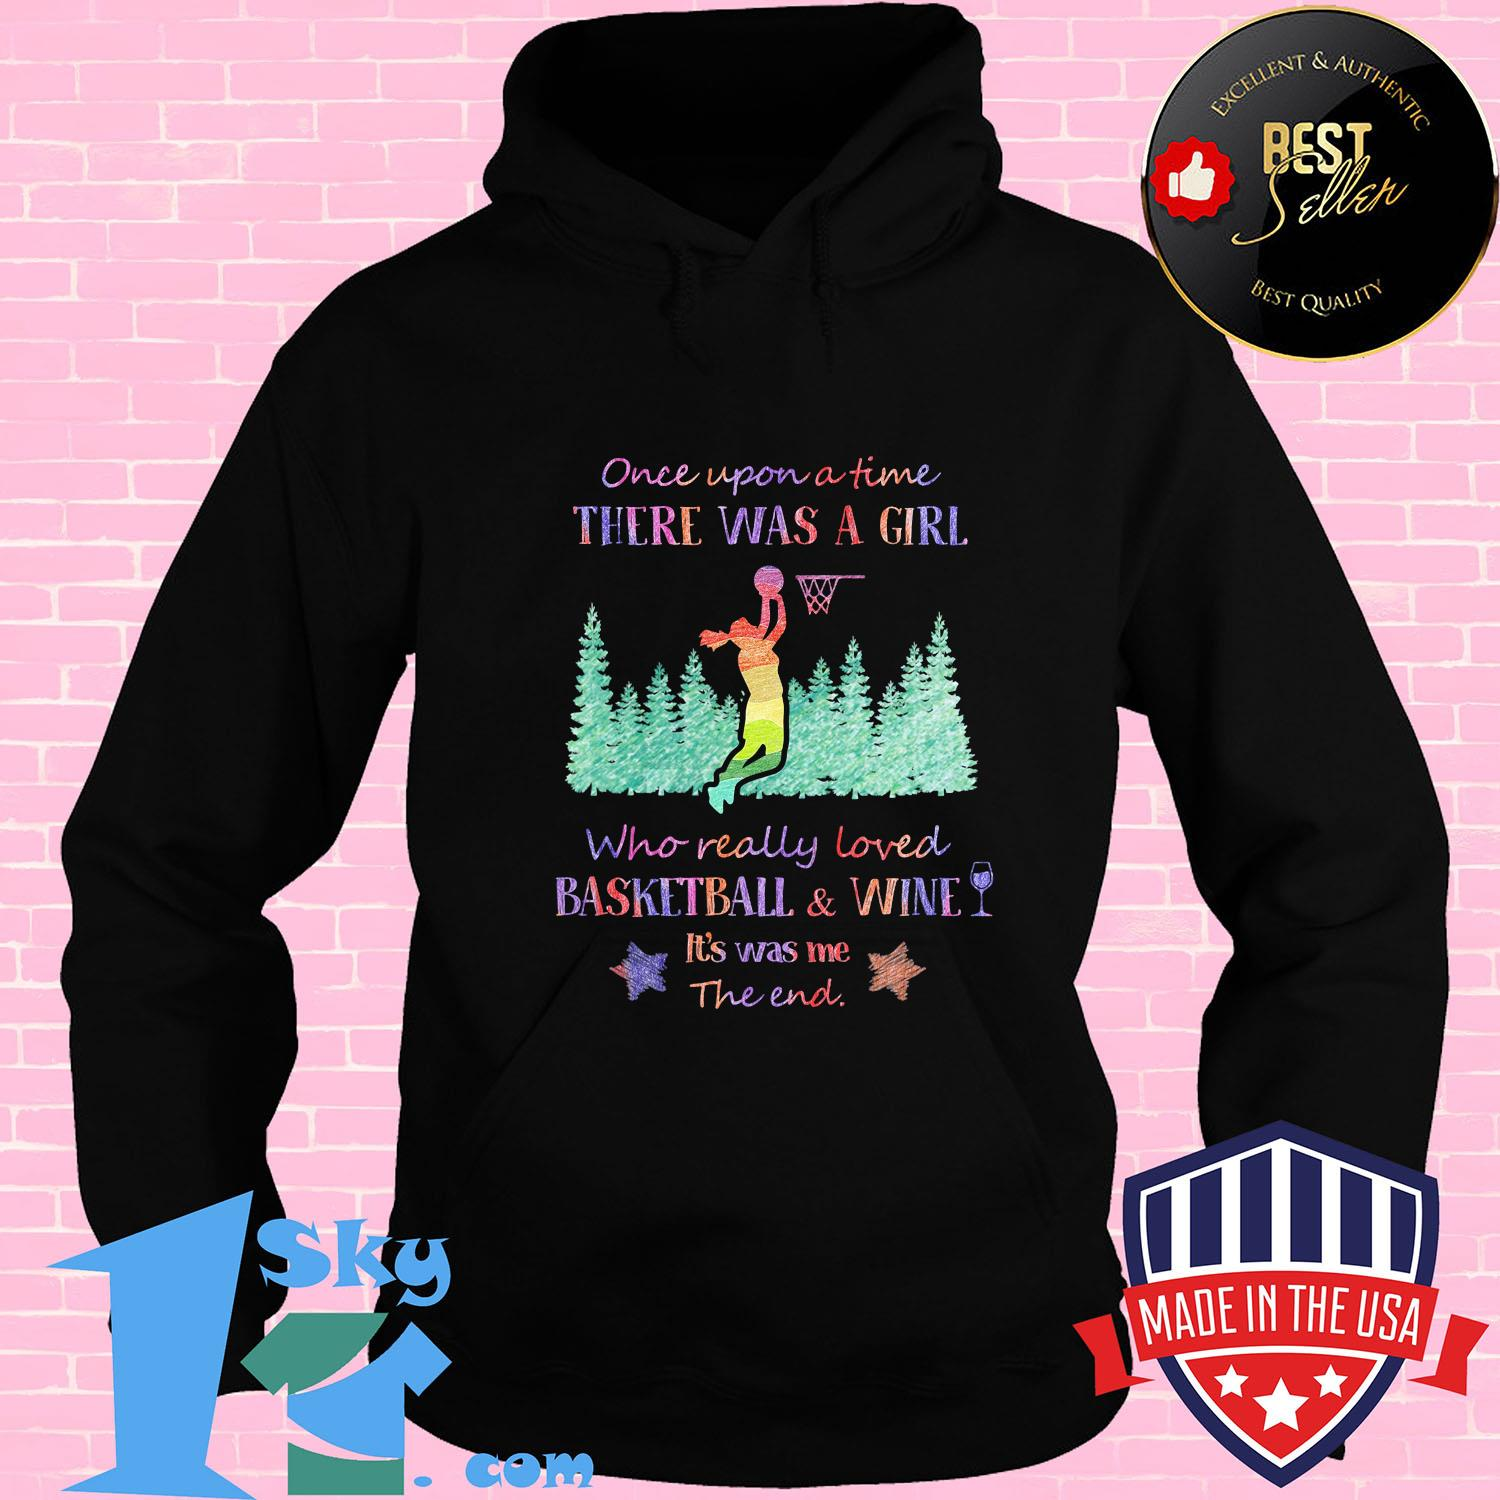 Once upon a time there was a girl who really loved basketball and wine it's was me the end star shirt